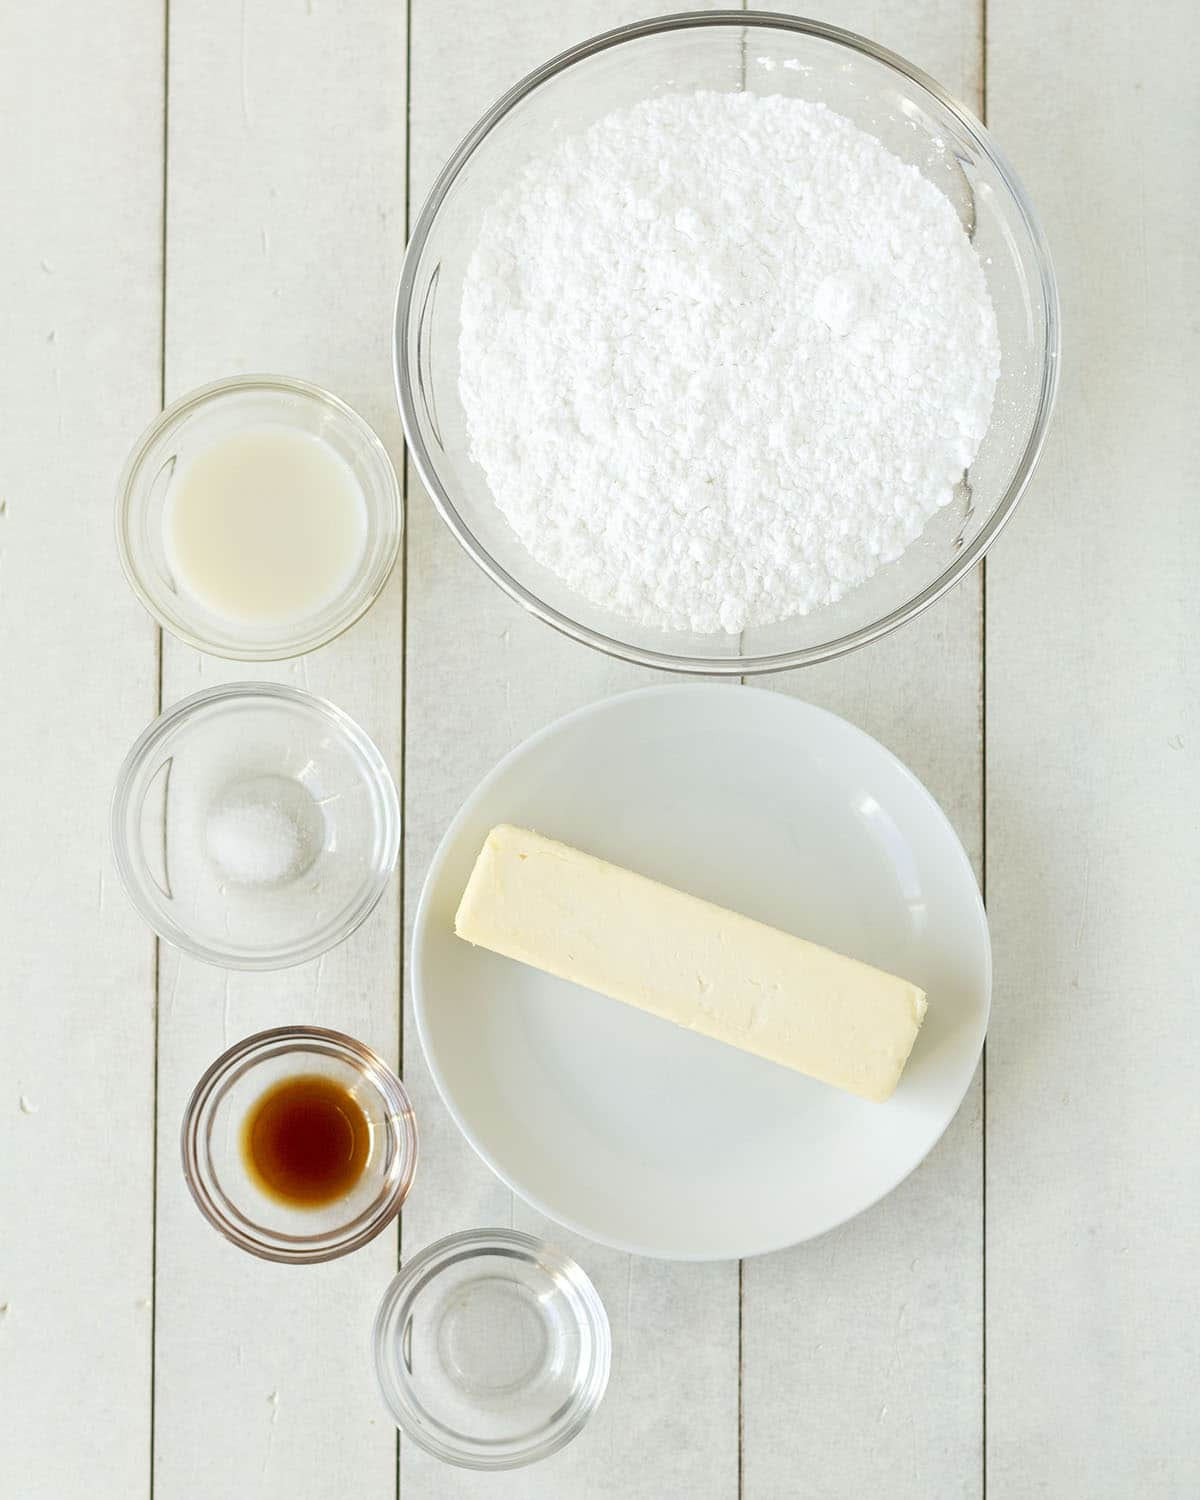 Overhead shot showing the ingredients needed to make mint buttercream frosting.